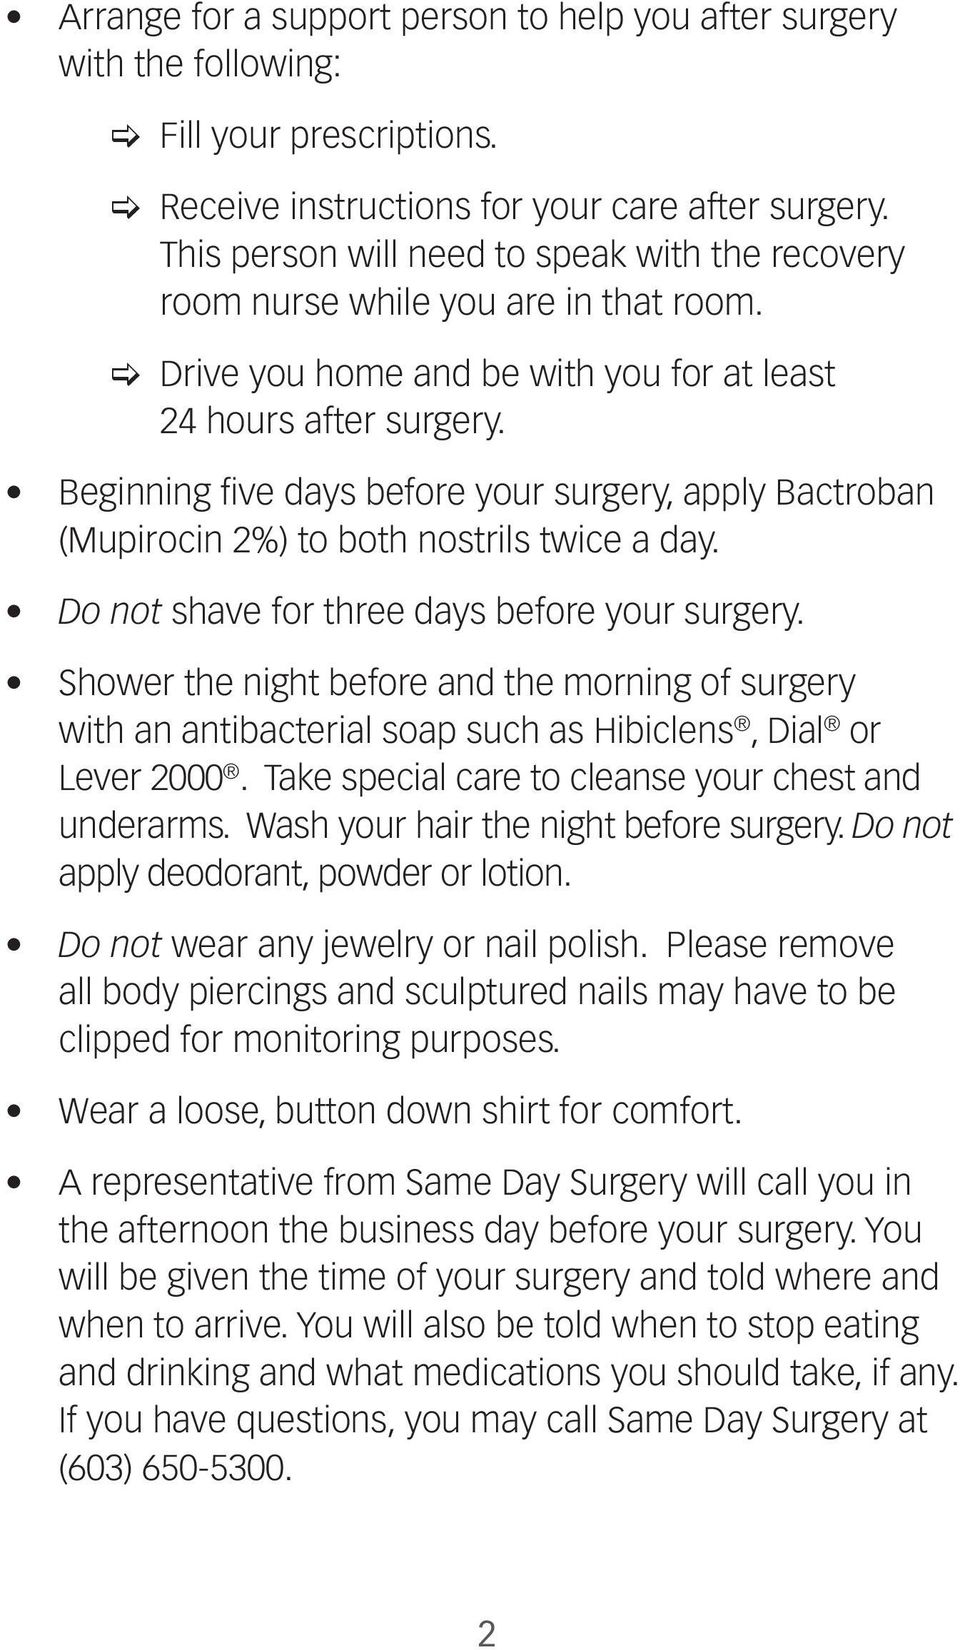 Beginning five days before your surgery, apply Bactroban (Mupirocin 2%) to both nostrils twice a day. Do not shave for three days before your surgery.